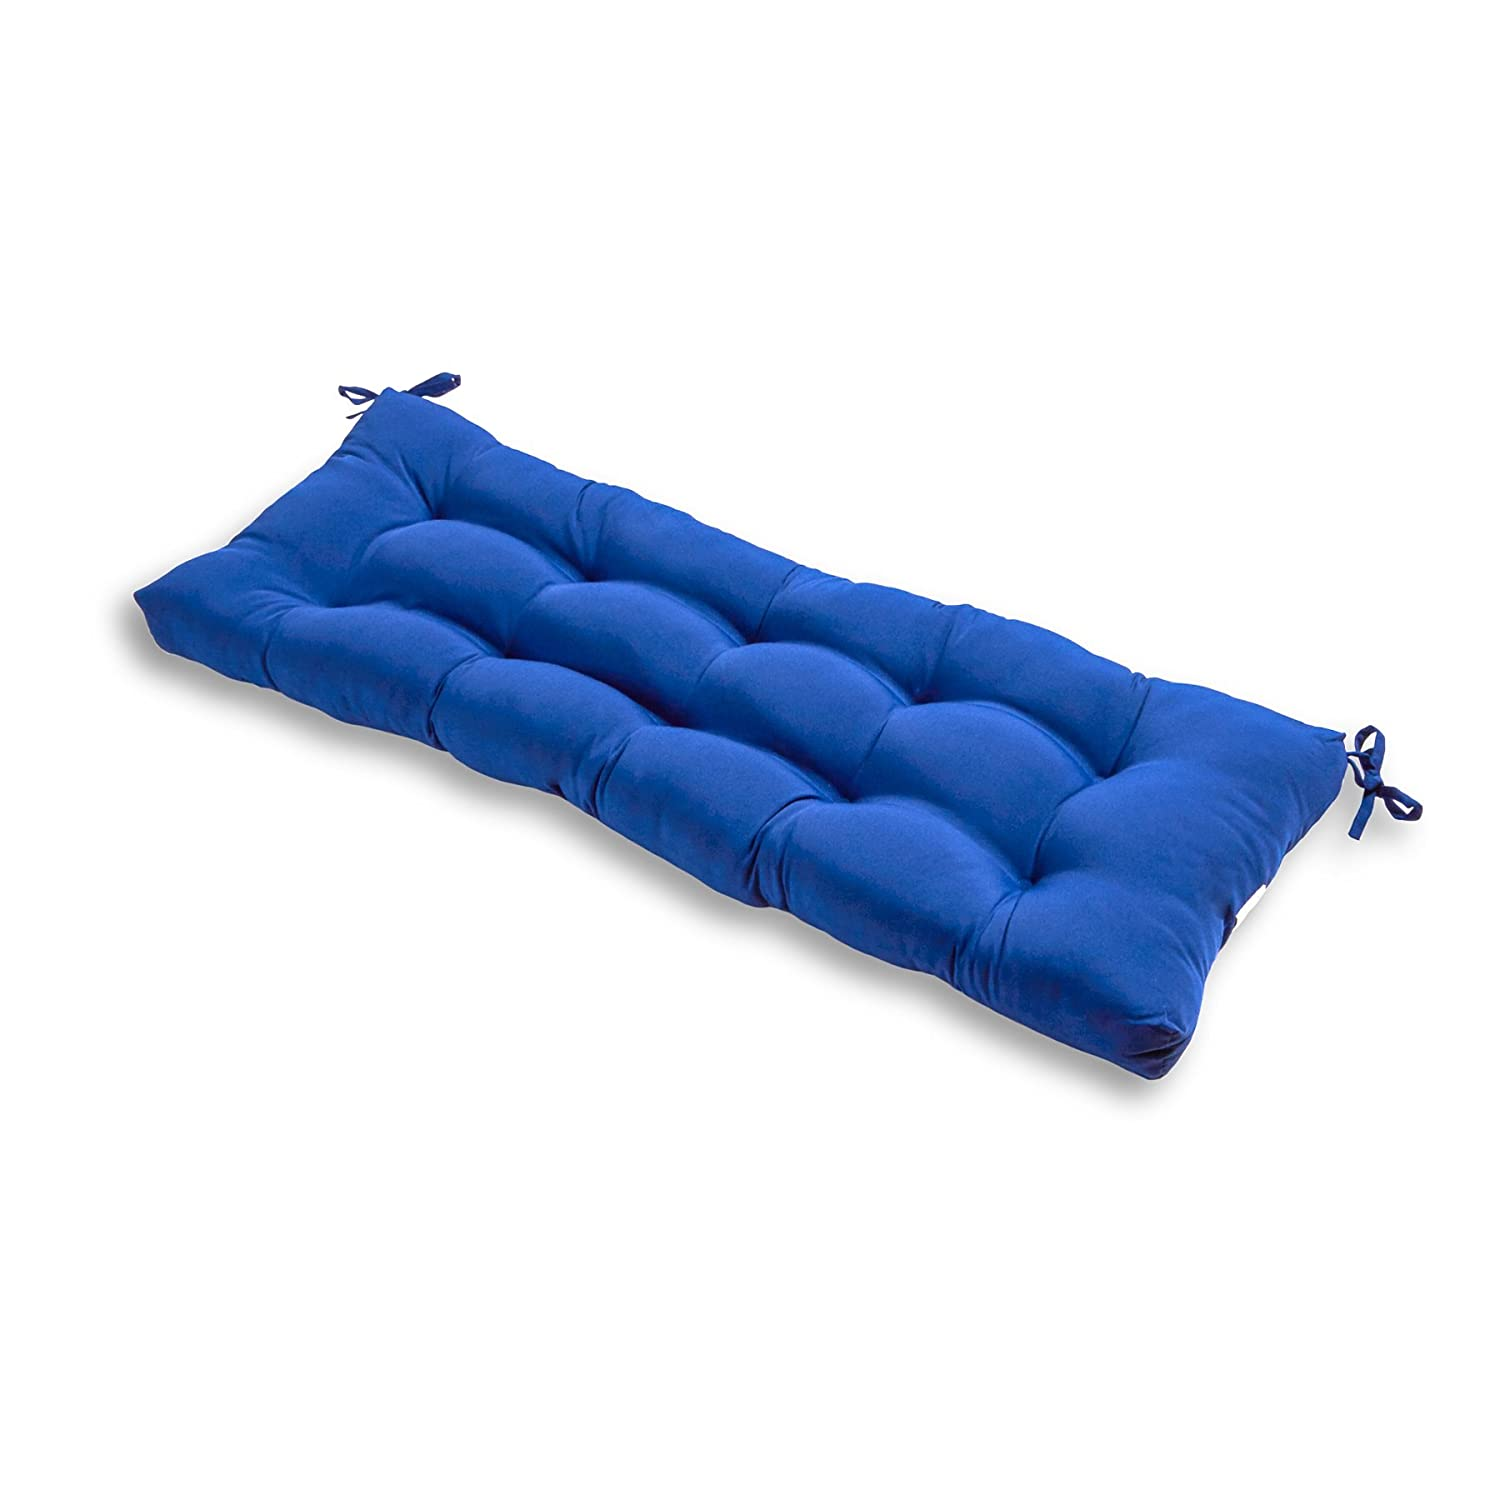 Greendale Home Fashions 51 Inch Indoor/Outdoor Bench Cushion, Marine Blue